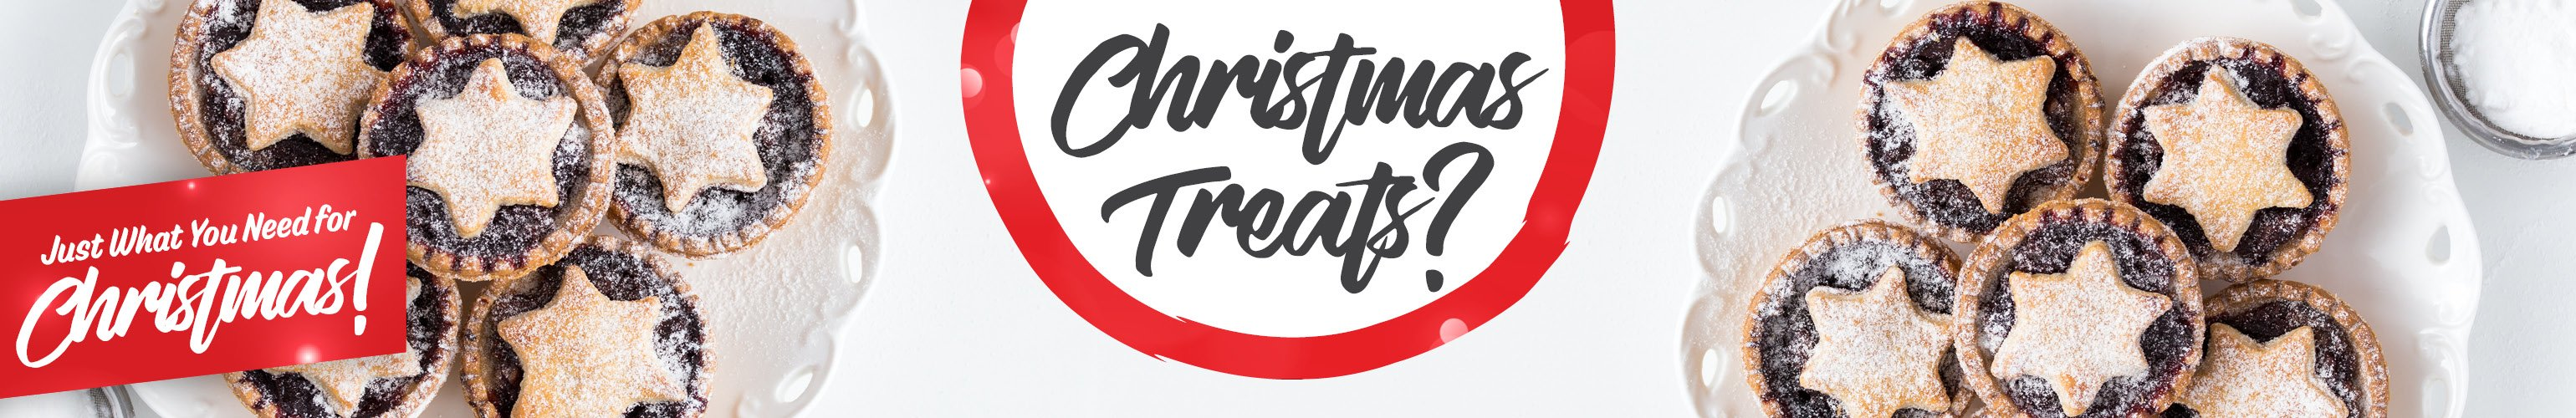 Shop Christmas Treats!